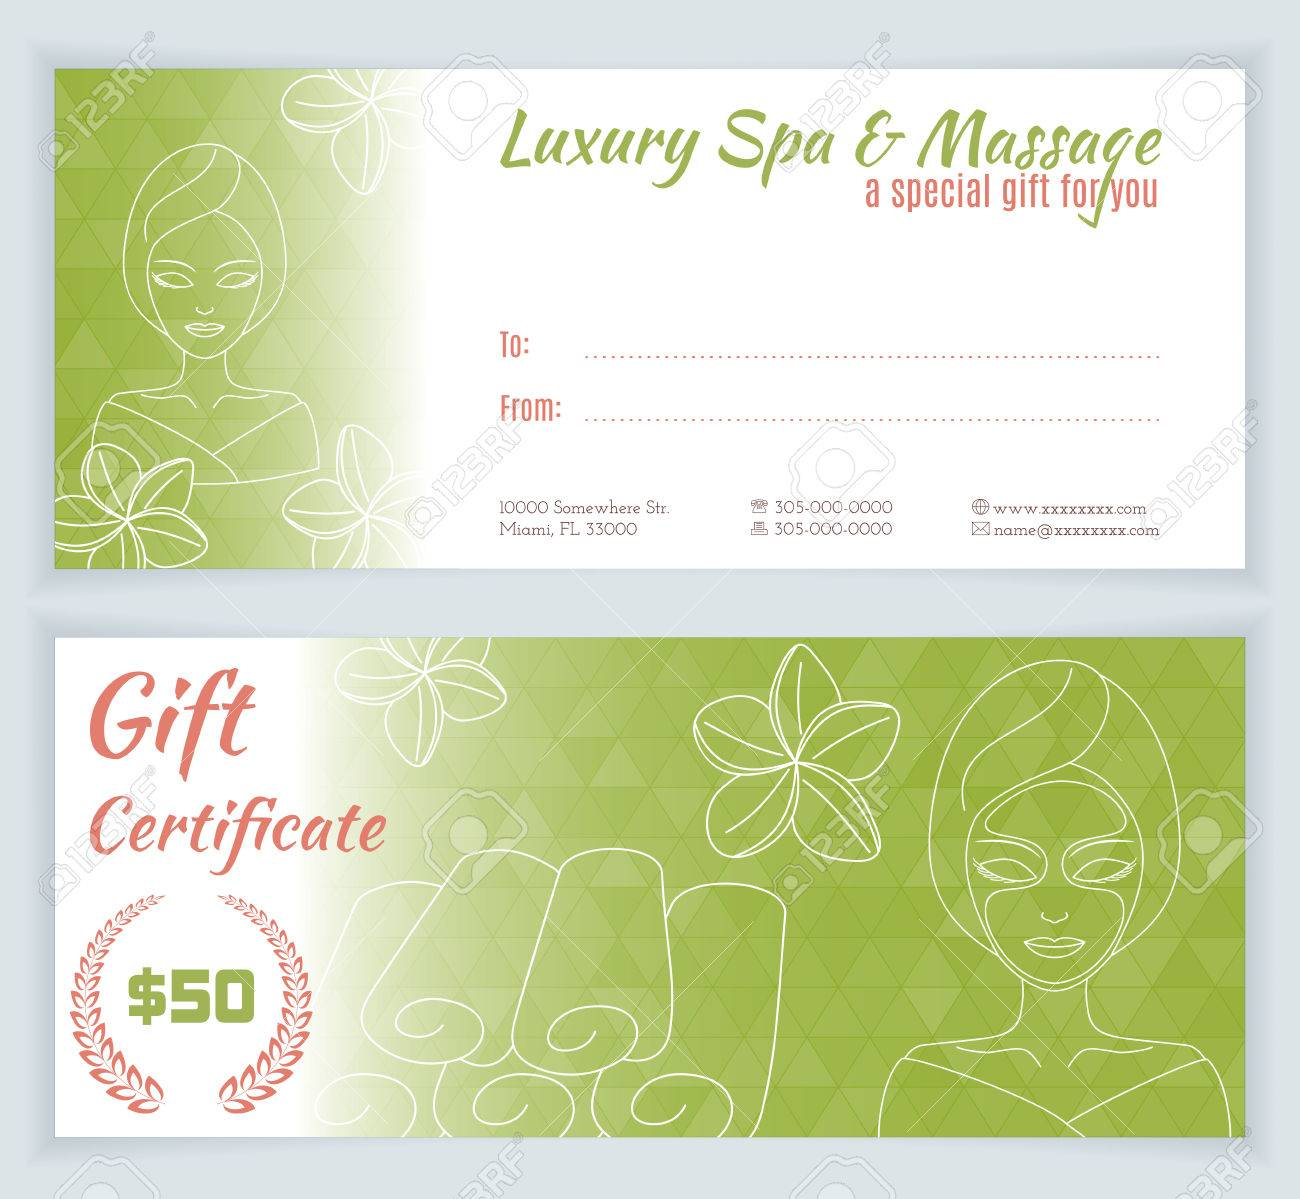 Spa Massage Gift Certificate Template With Hand Drawn Woman - Massage gift certificate templates